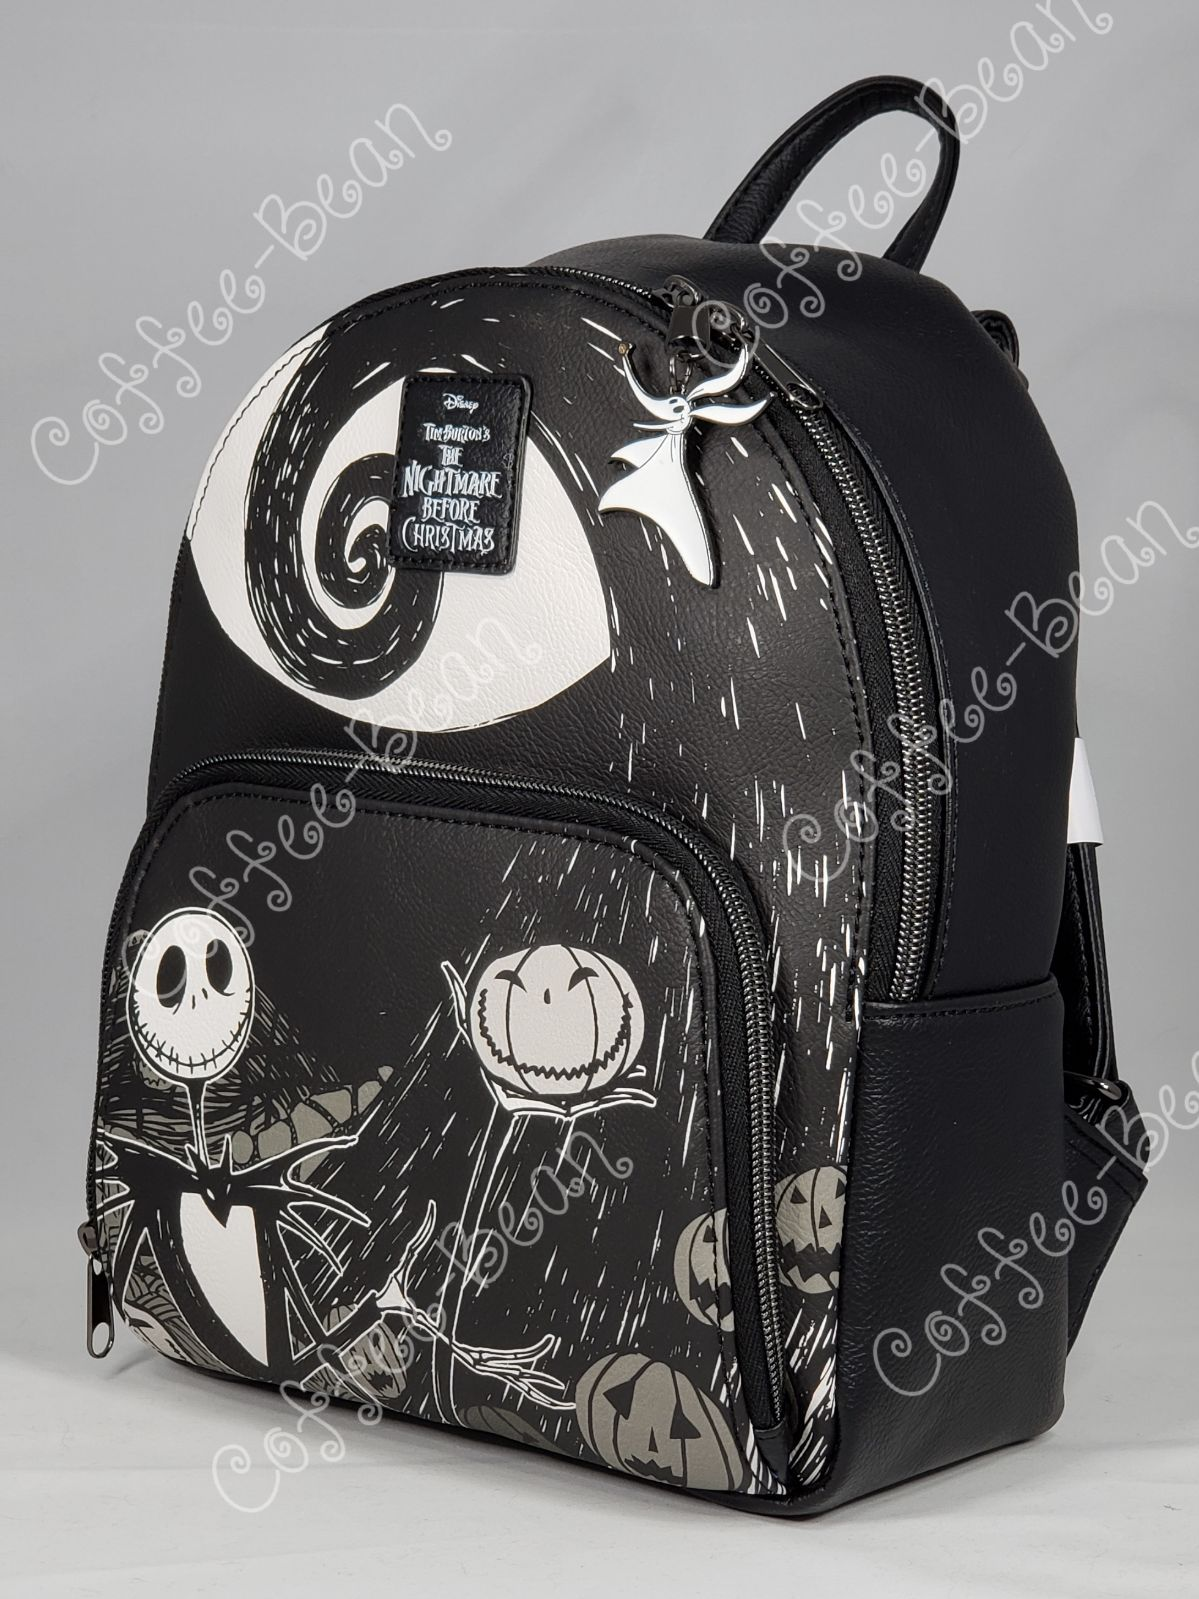 Up For Sale Is Brand New Hot Topic Loungefly Disney The Nightmare Before Christmas Jack Spiral Hill Mini Backpack Have It In Han Loungefly Mini Backpack Mini